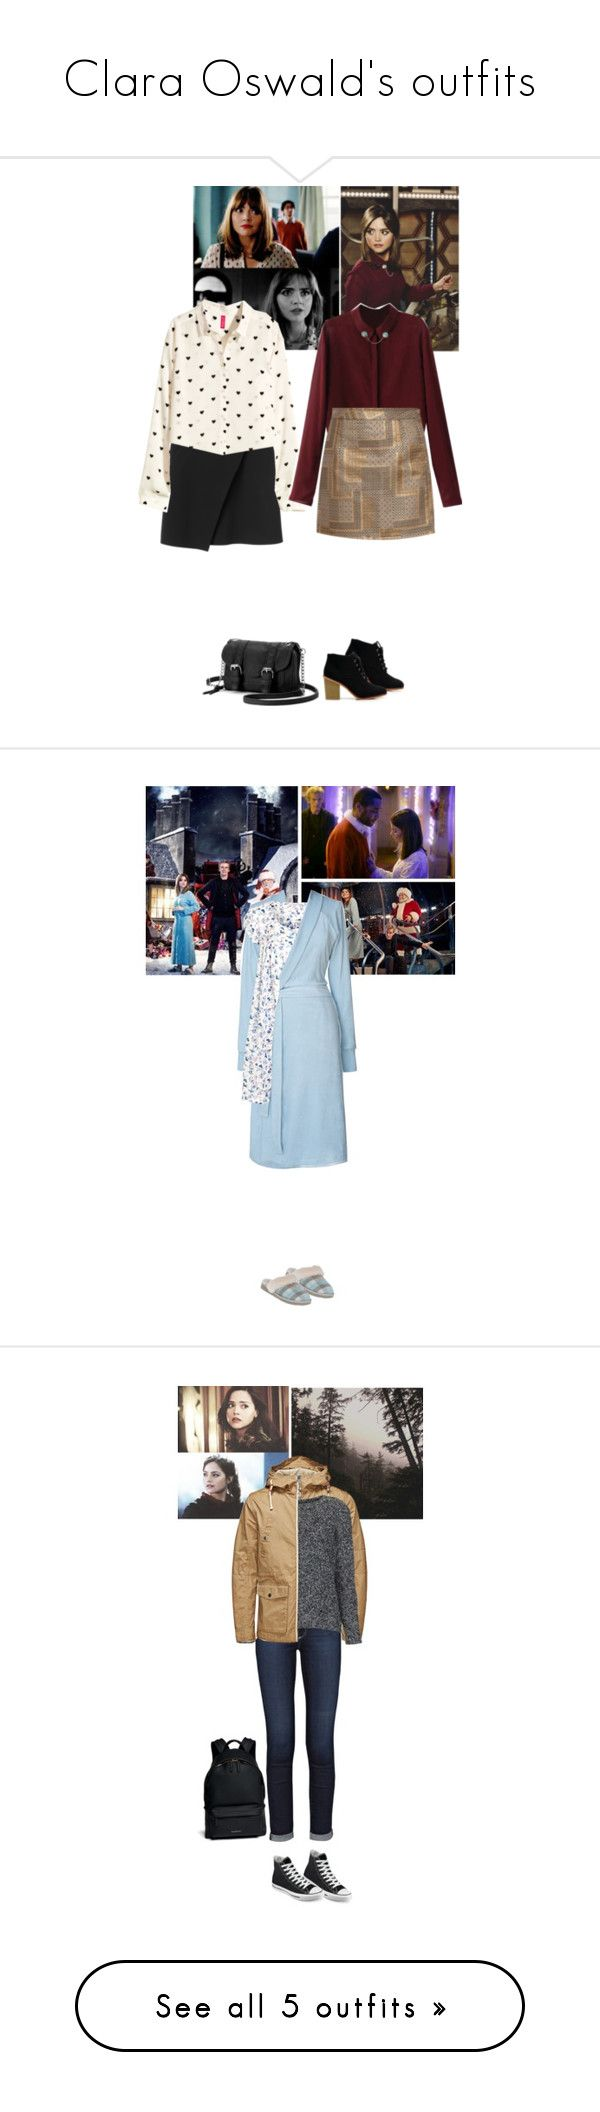 """Clara Oswald's outfits"" by serpensortis ❤ liked on Polyvore featuring Monki, H&M, KAGE, Candie's, UGG Australia, Nine Space, John Lewis, Leah Flores, AG Adriano Goldschmied and Topshop"